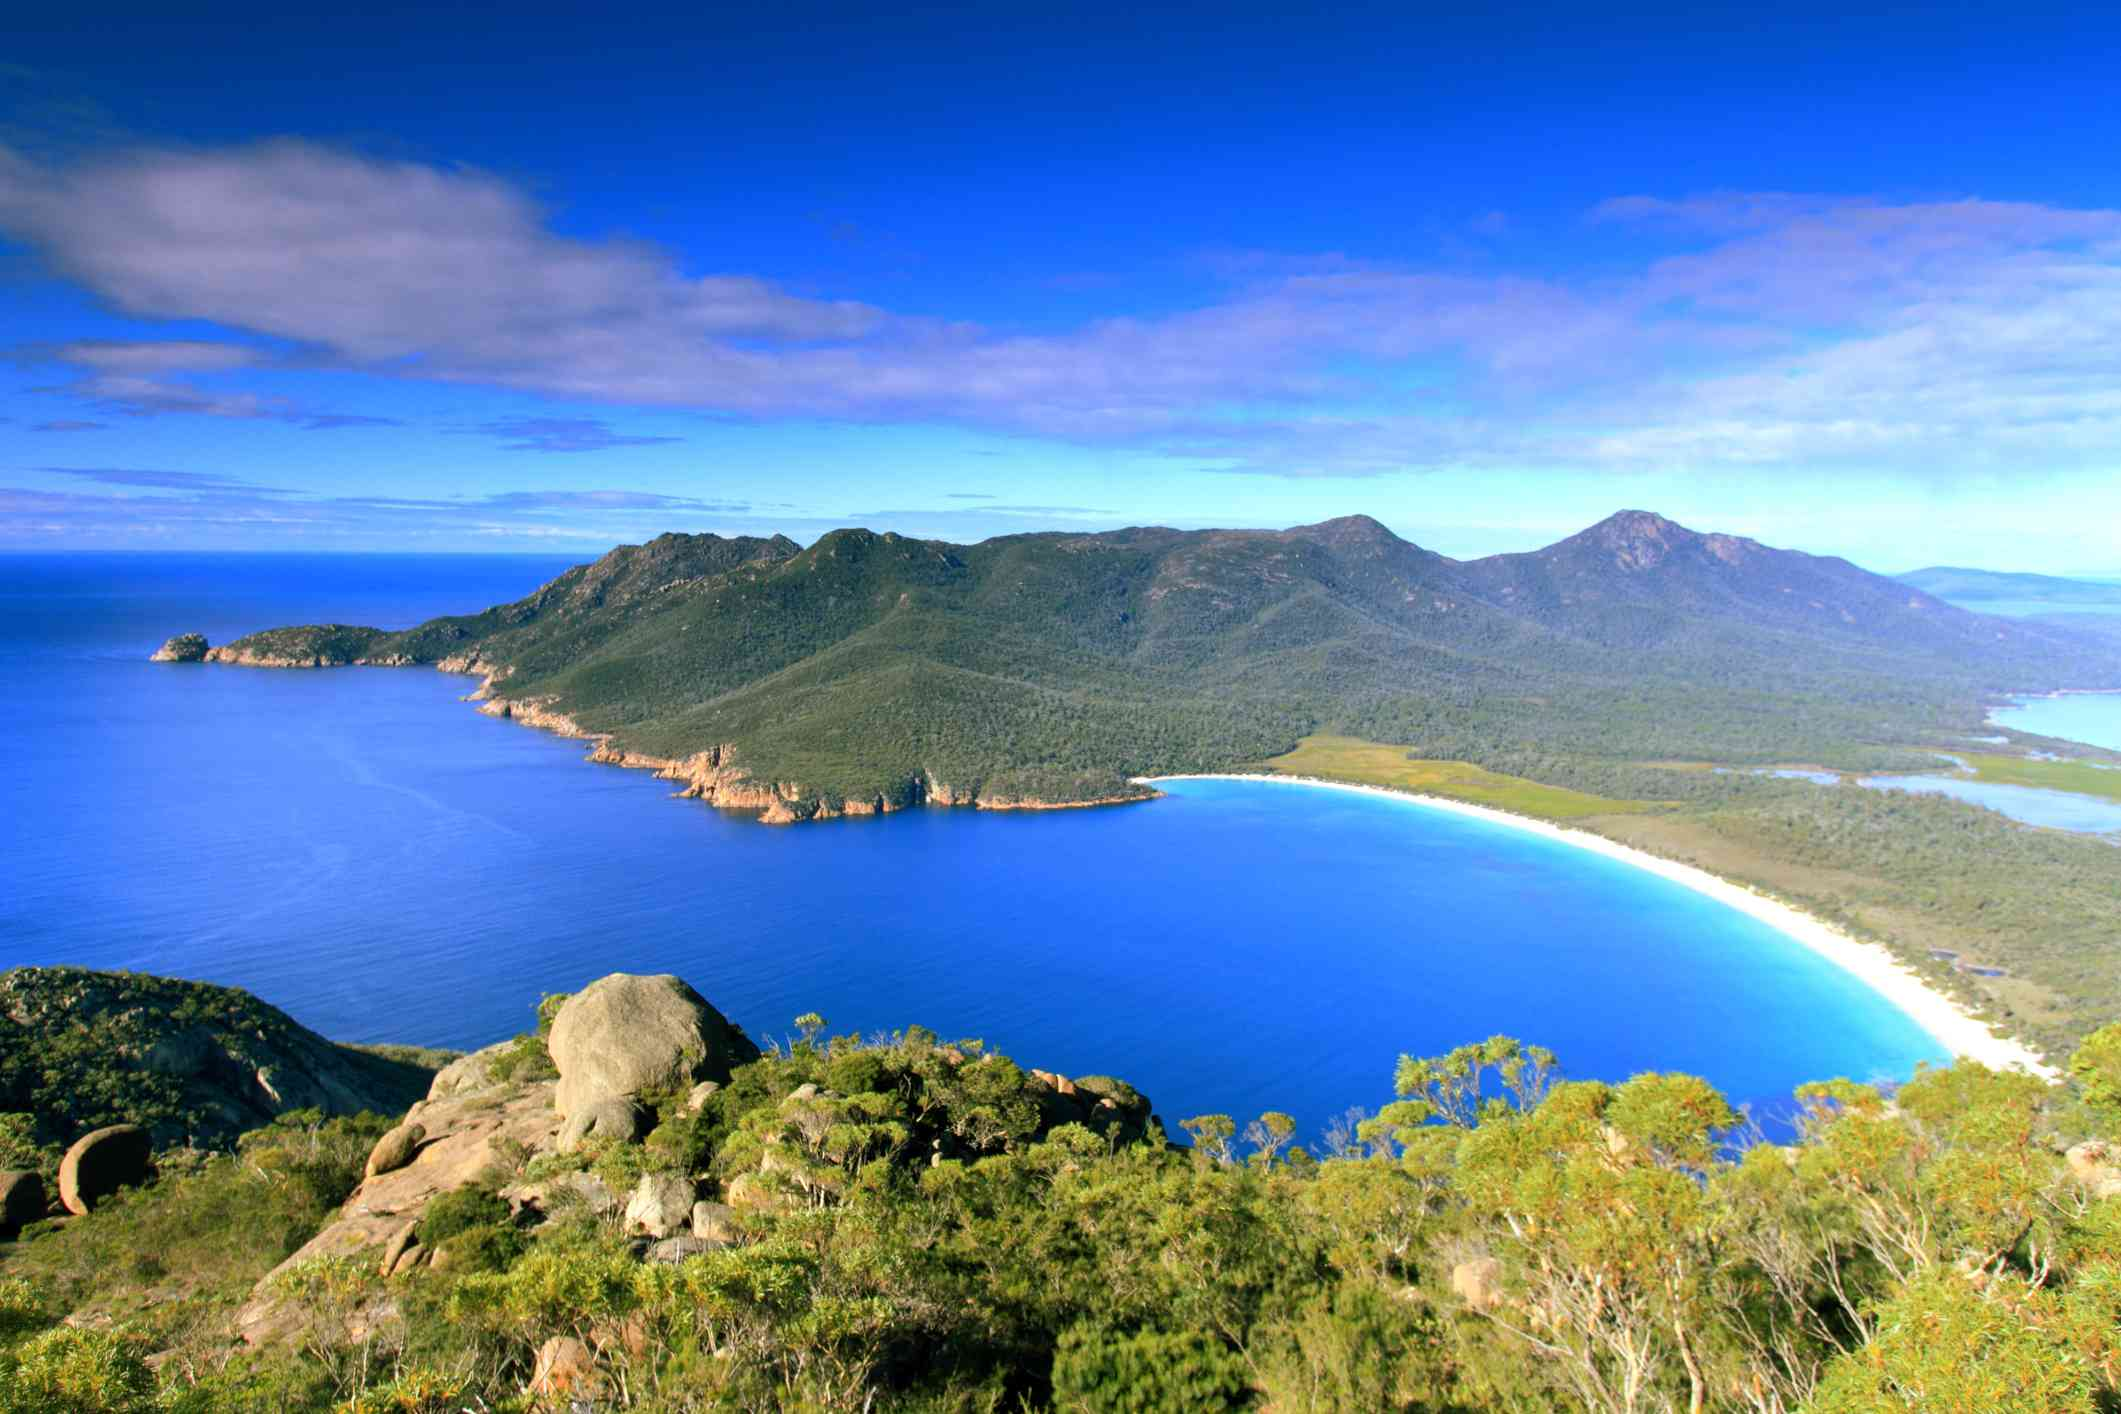 View of Wineglass Bay from nearby hill